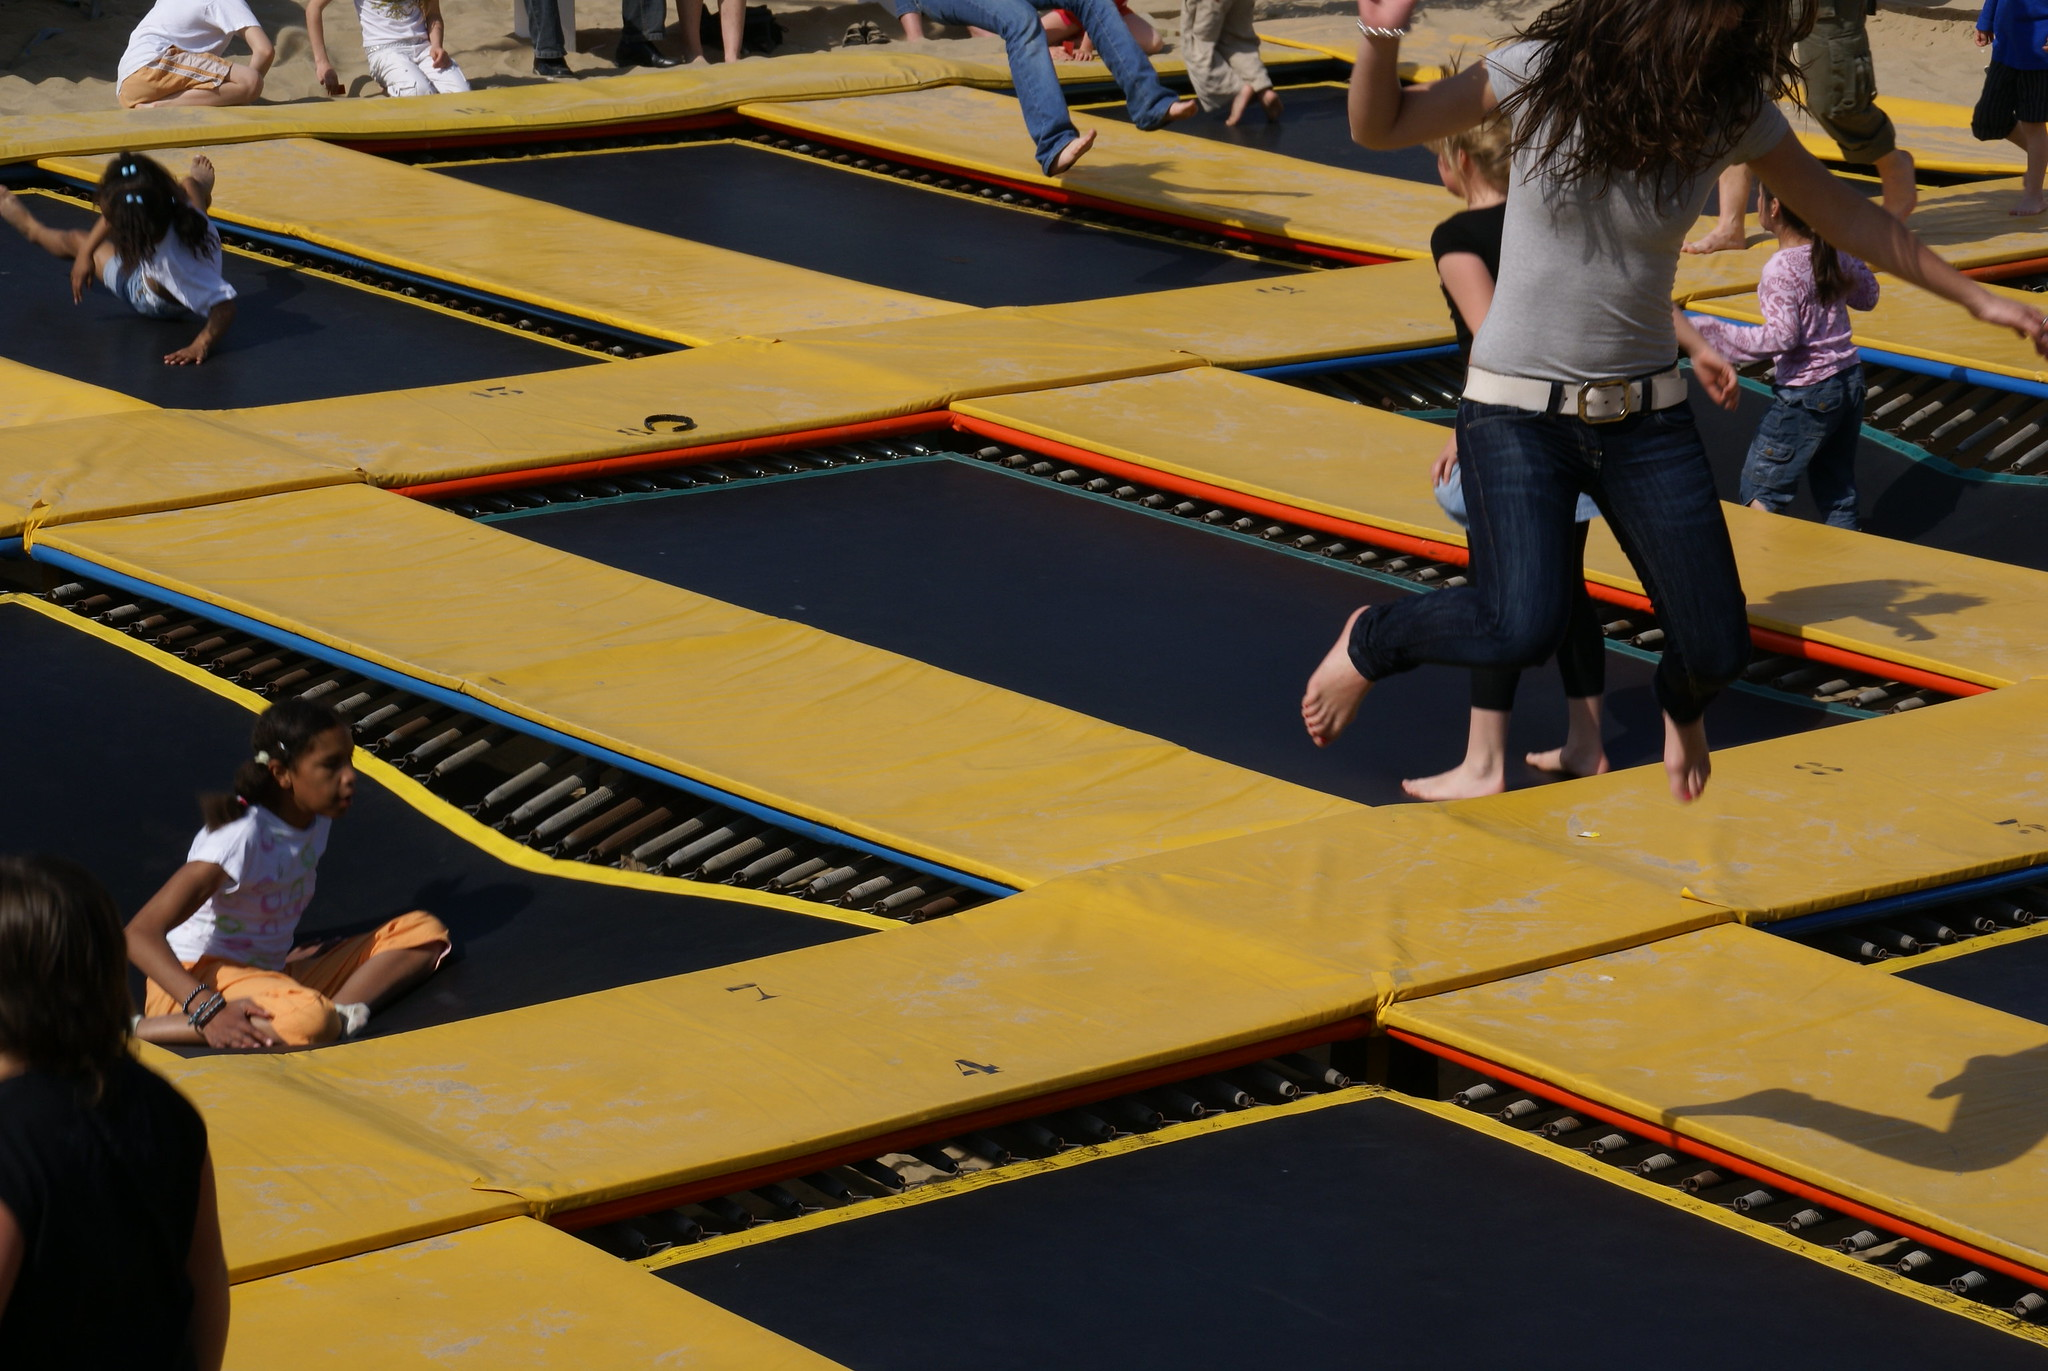 children at Sky Zone Trampoline Park